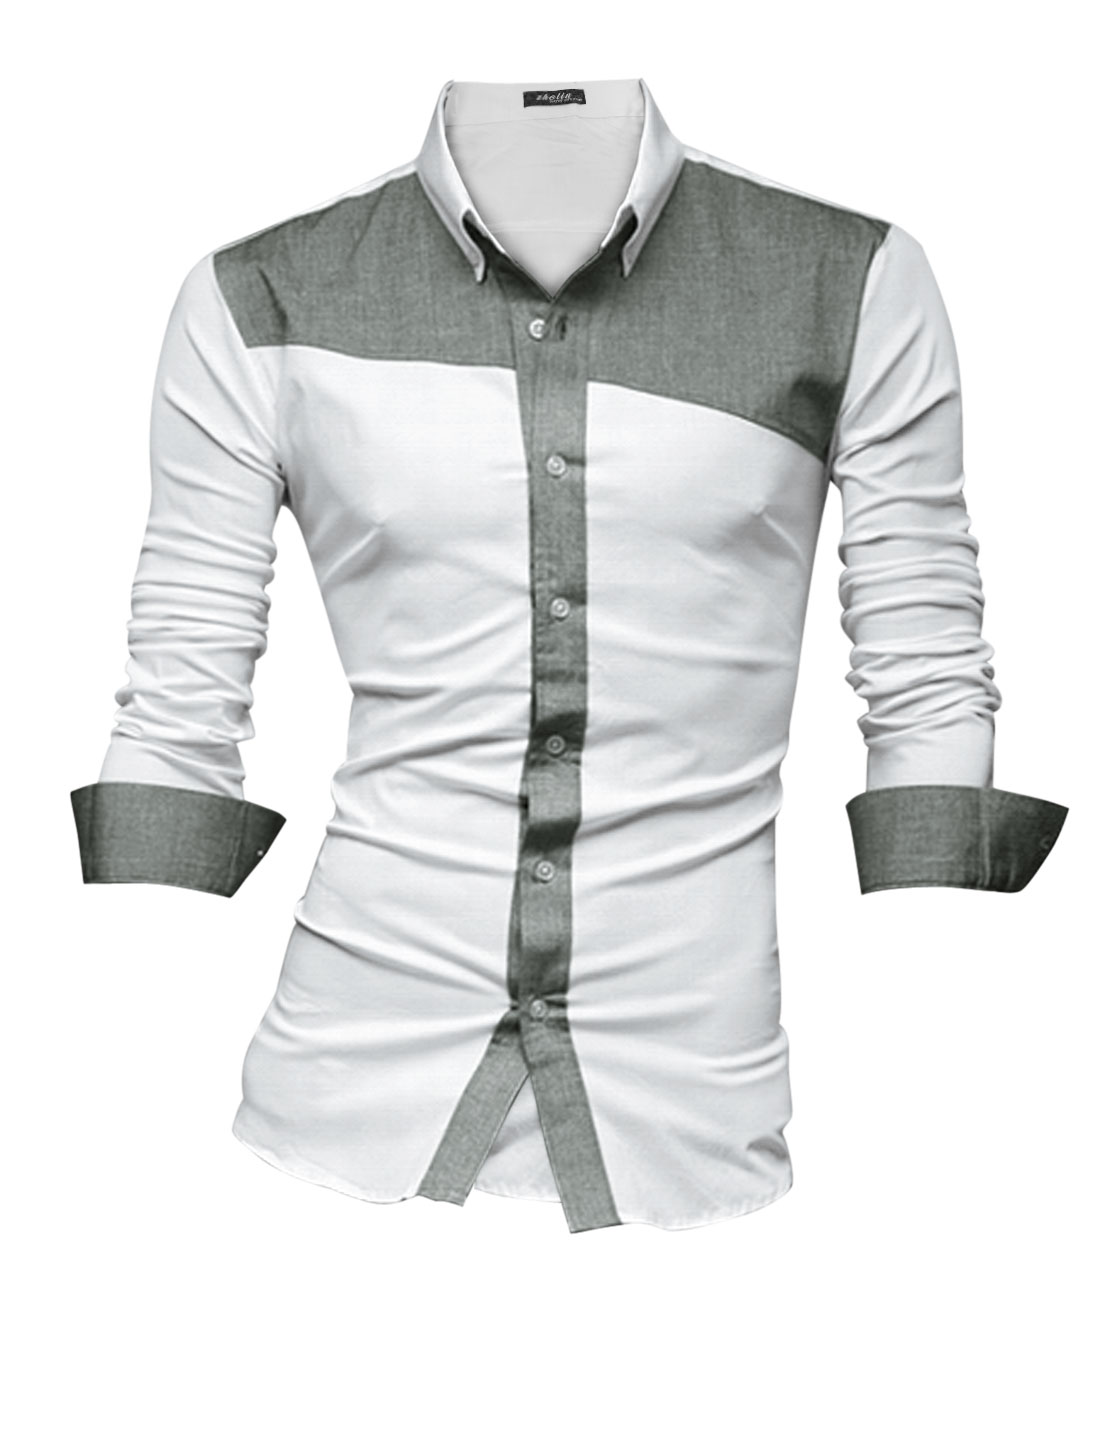 Men Panel Contrast Color Placket Casual Button Down Shirt Light Gray White M